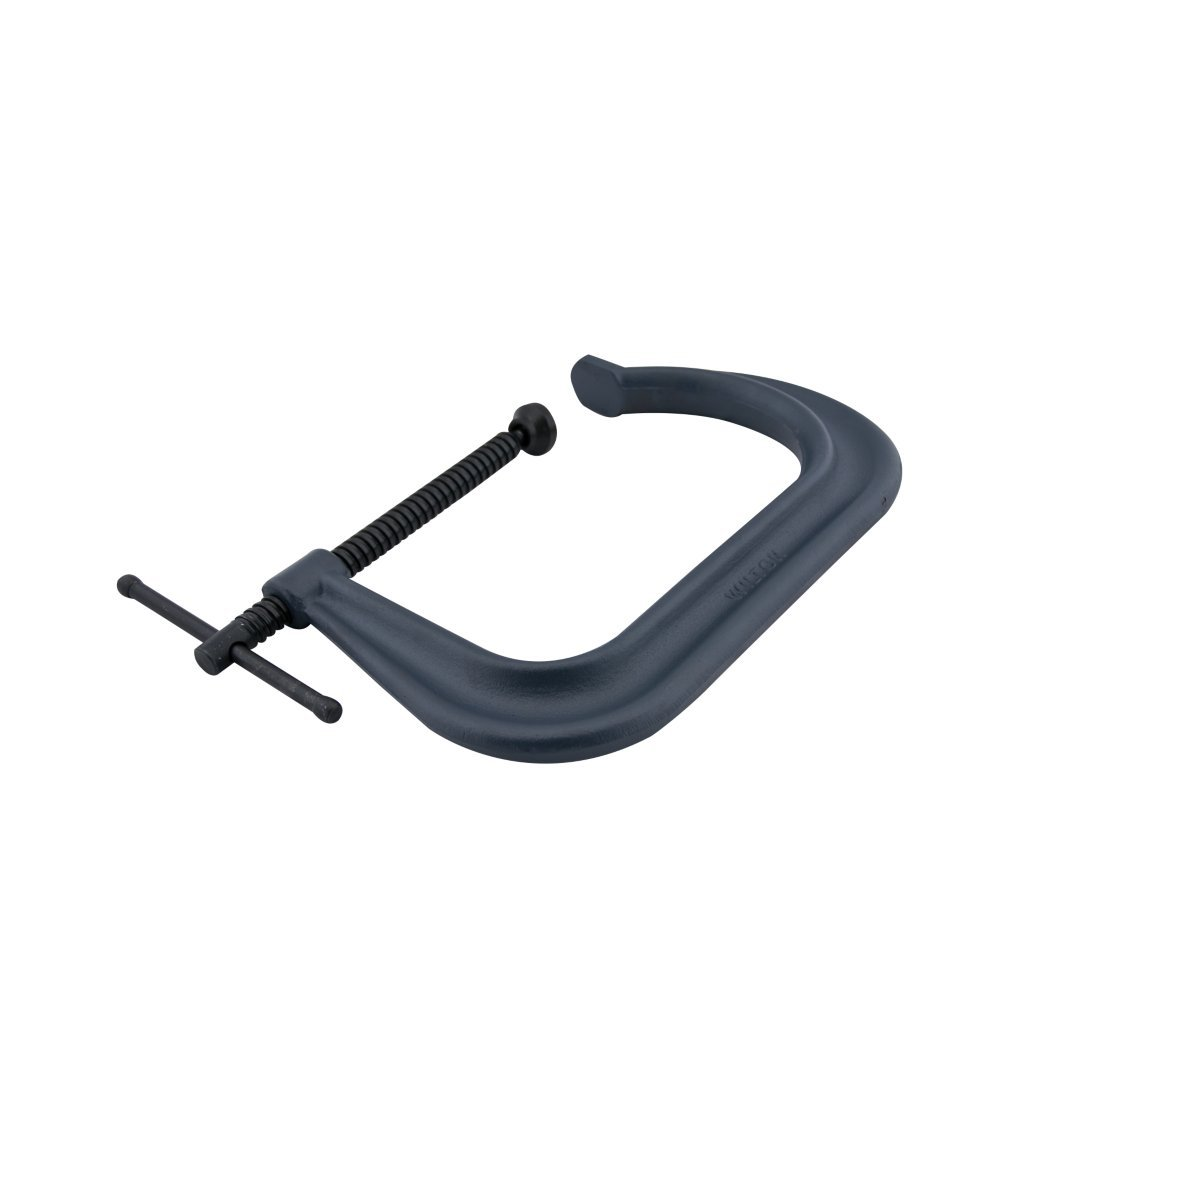 Wilton 14375 4406, 4400 Series Forged C-Clamp-Extra Deep-Throat, Regular-Duty, 0-Inch-6-Inch Jaw Opening, 5-Inch Throat Depth